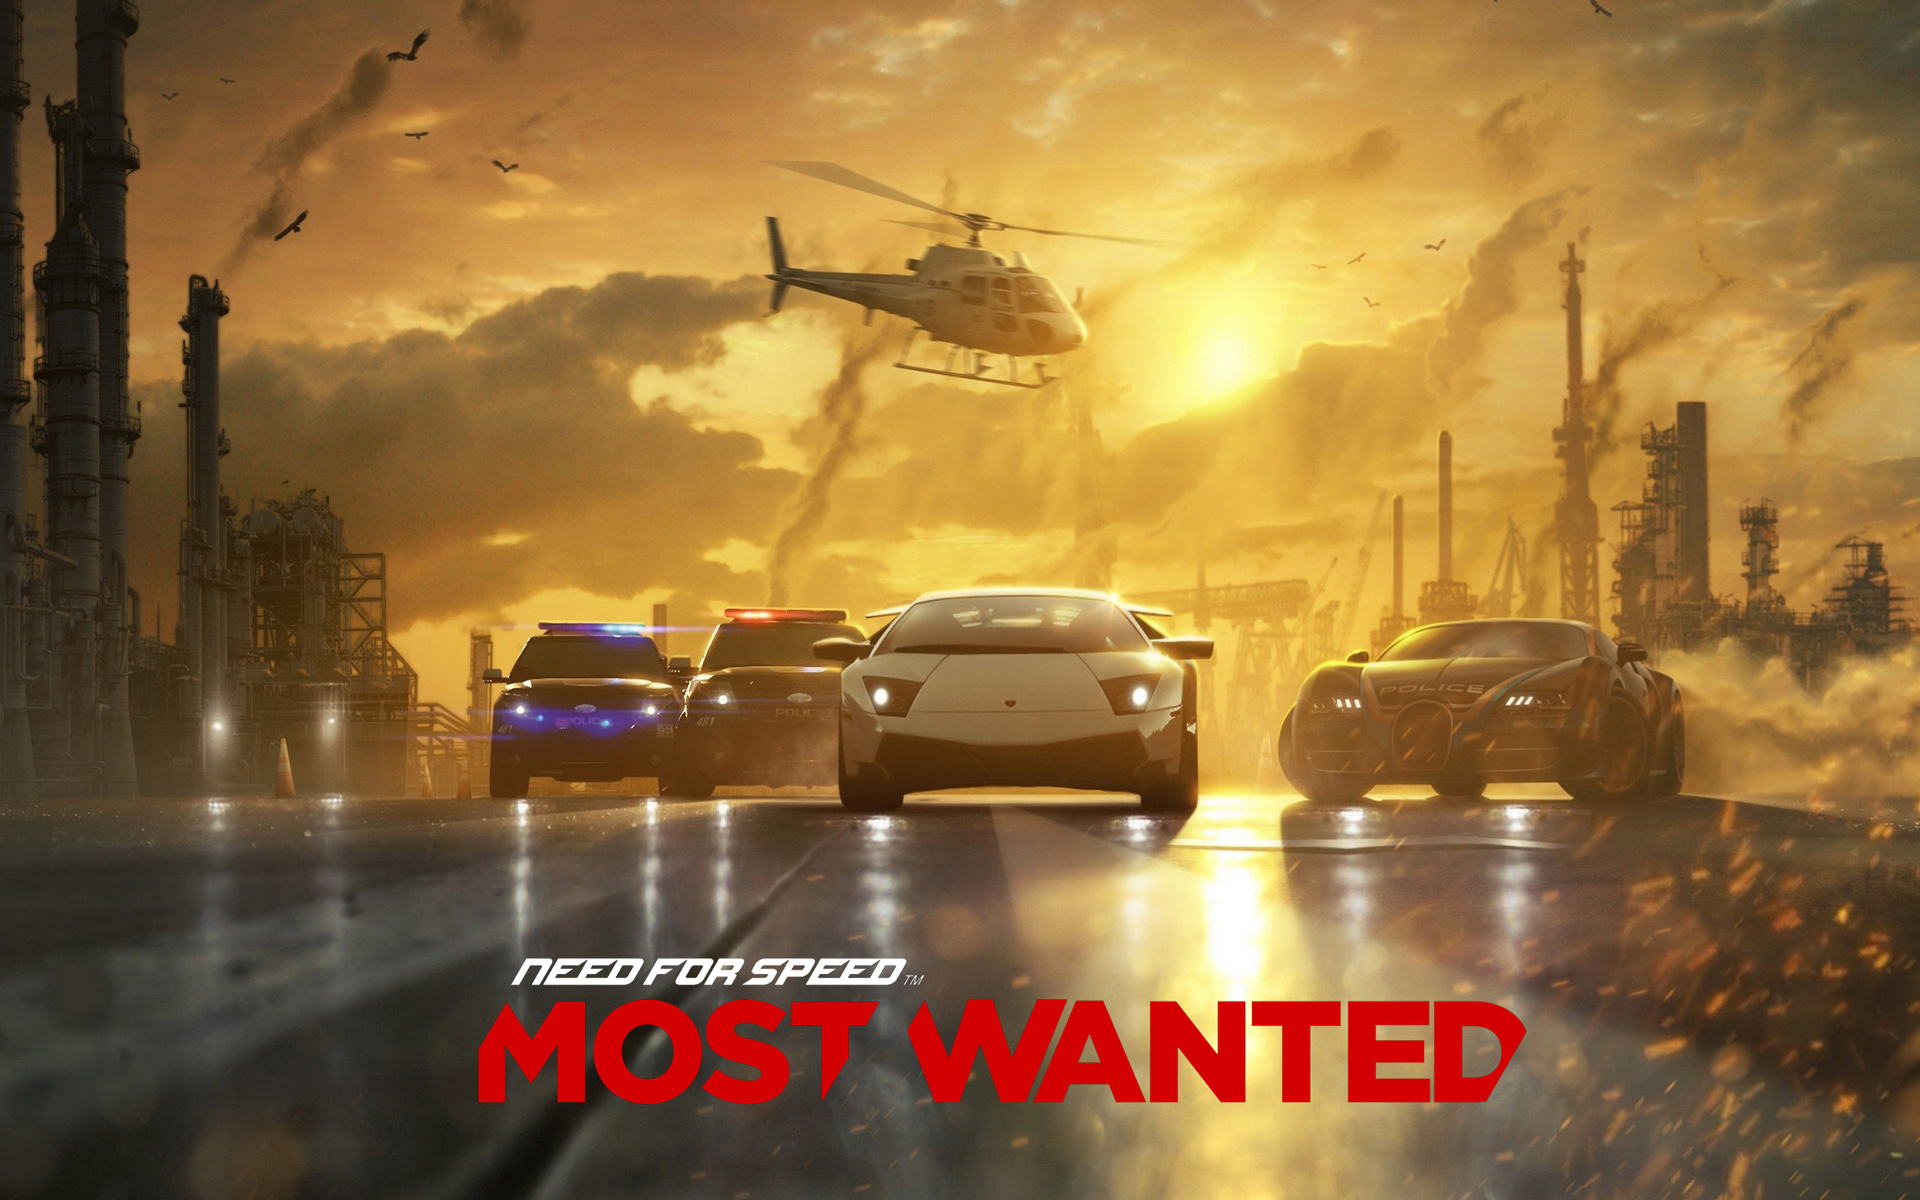 LagZero Analiza: Need for Speed: Most Wanted a Criterion Game [Arcade Review]